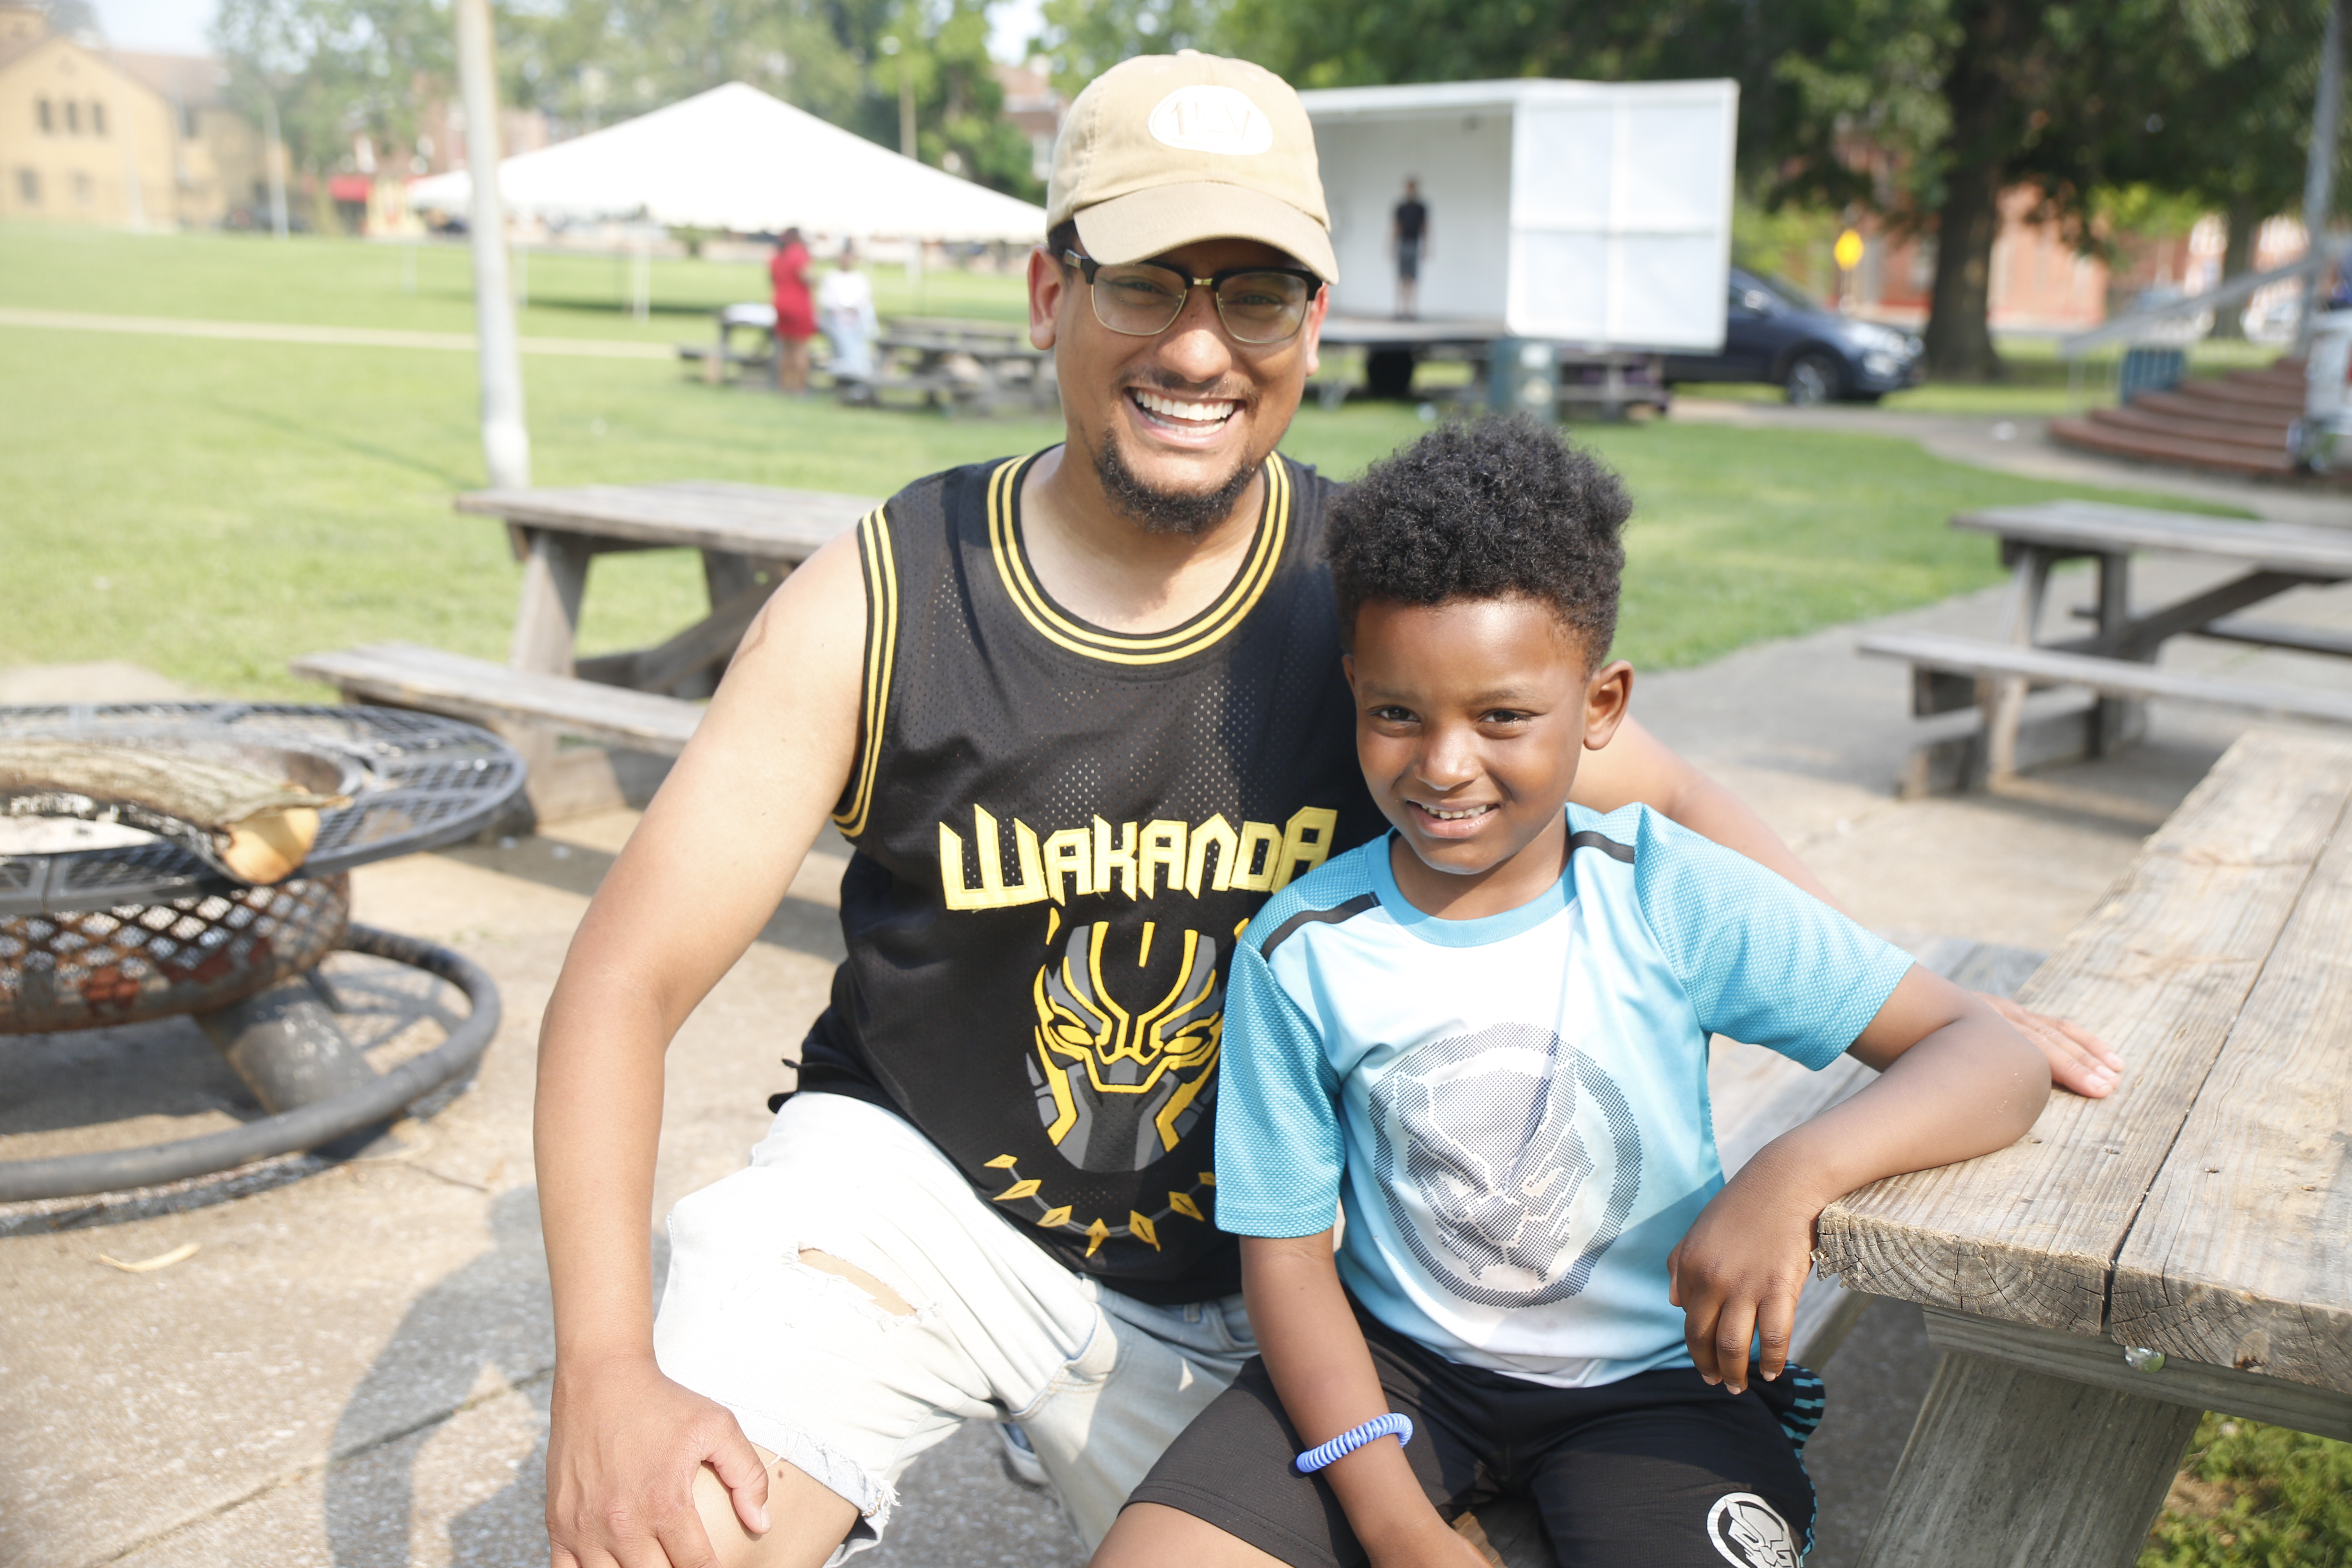 'Camping' in the 'hood all good for dads and kids in Hyde Park